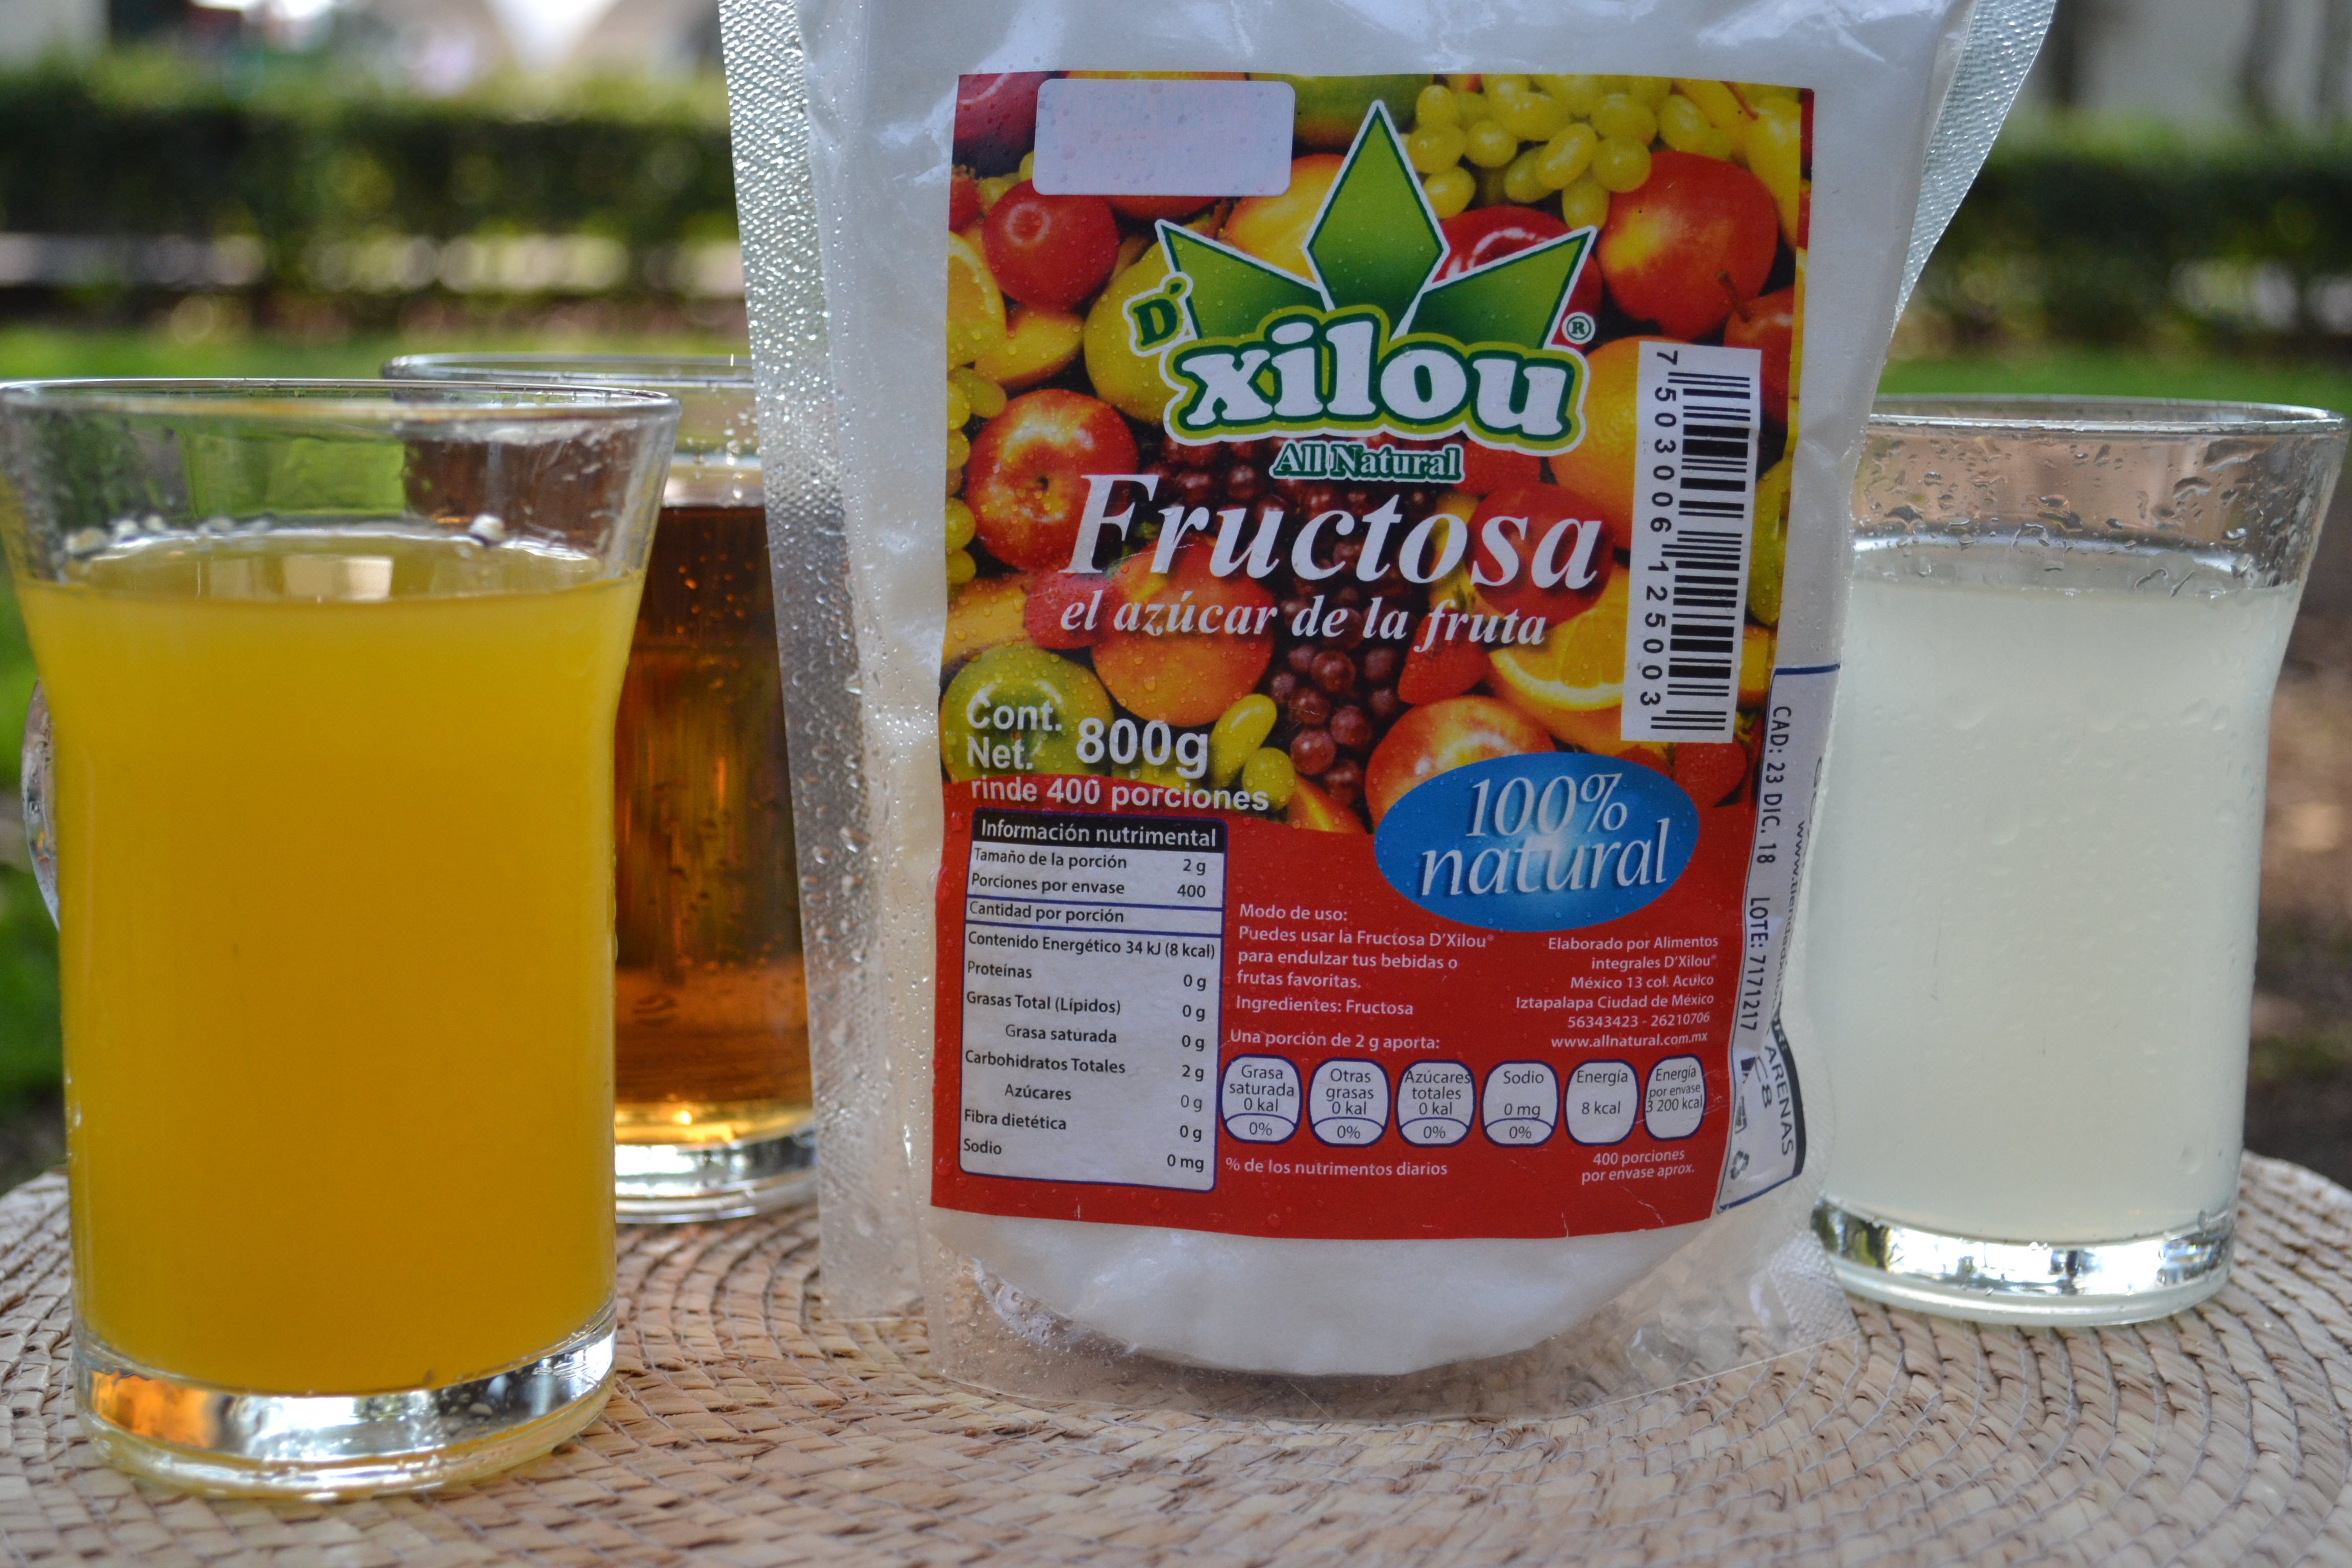 Fructosa 800g.